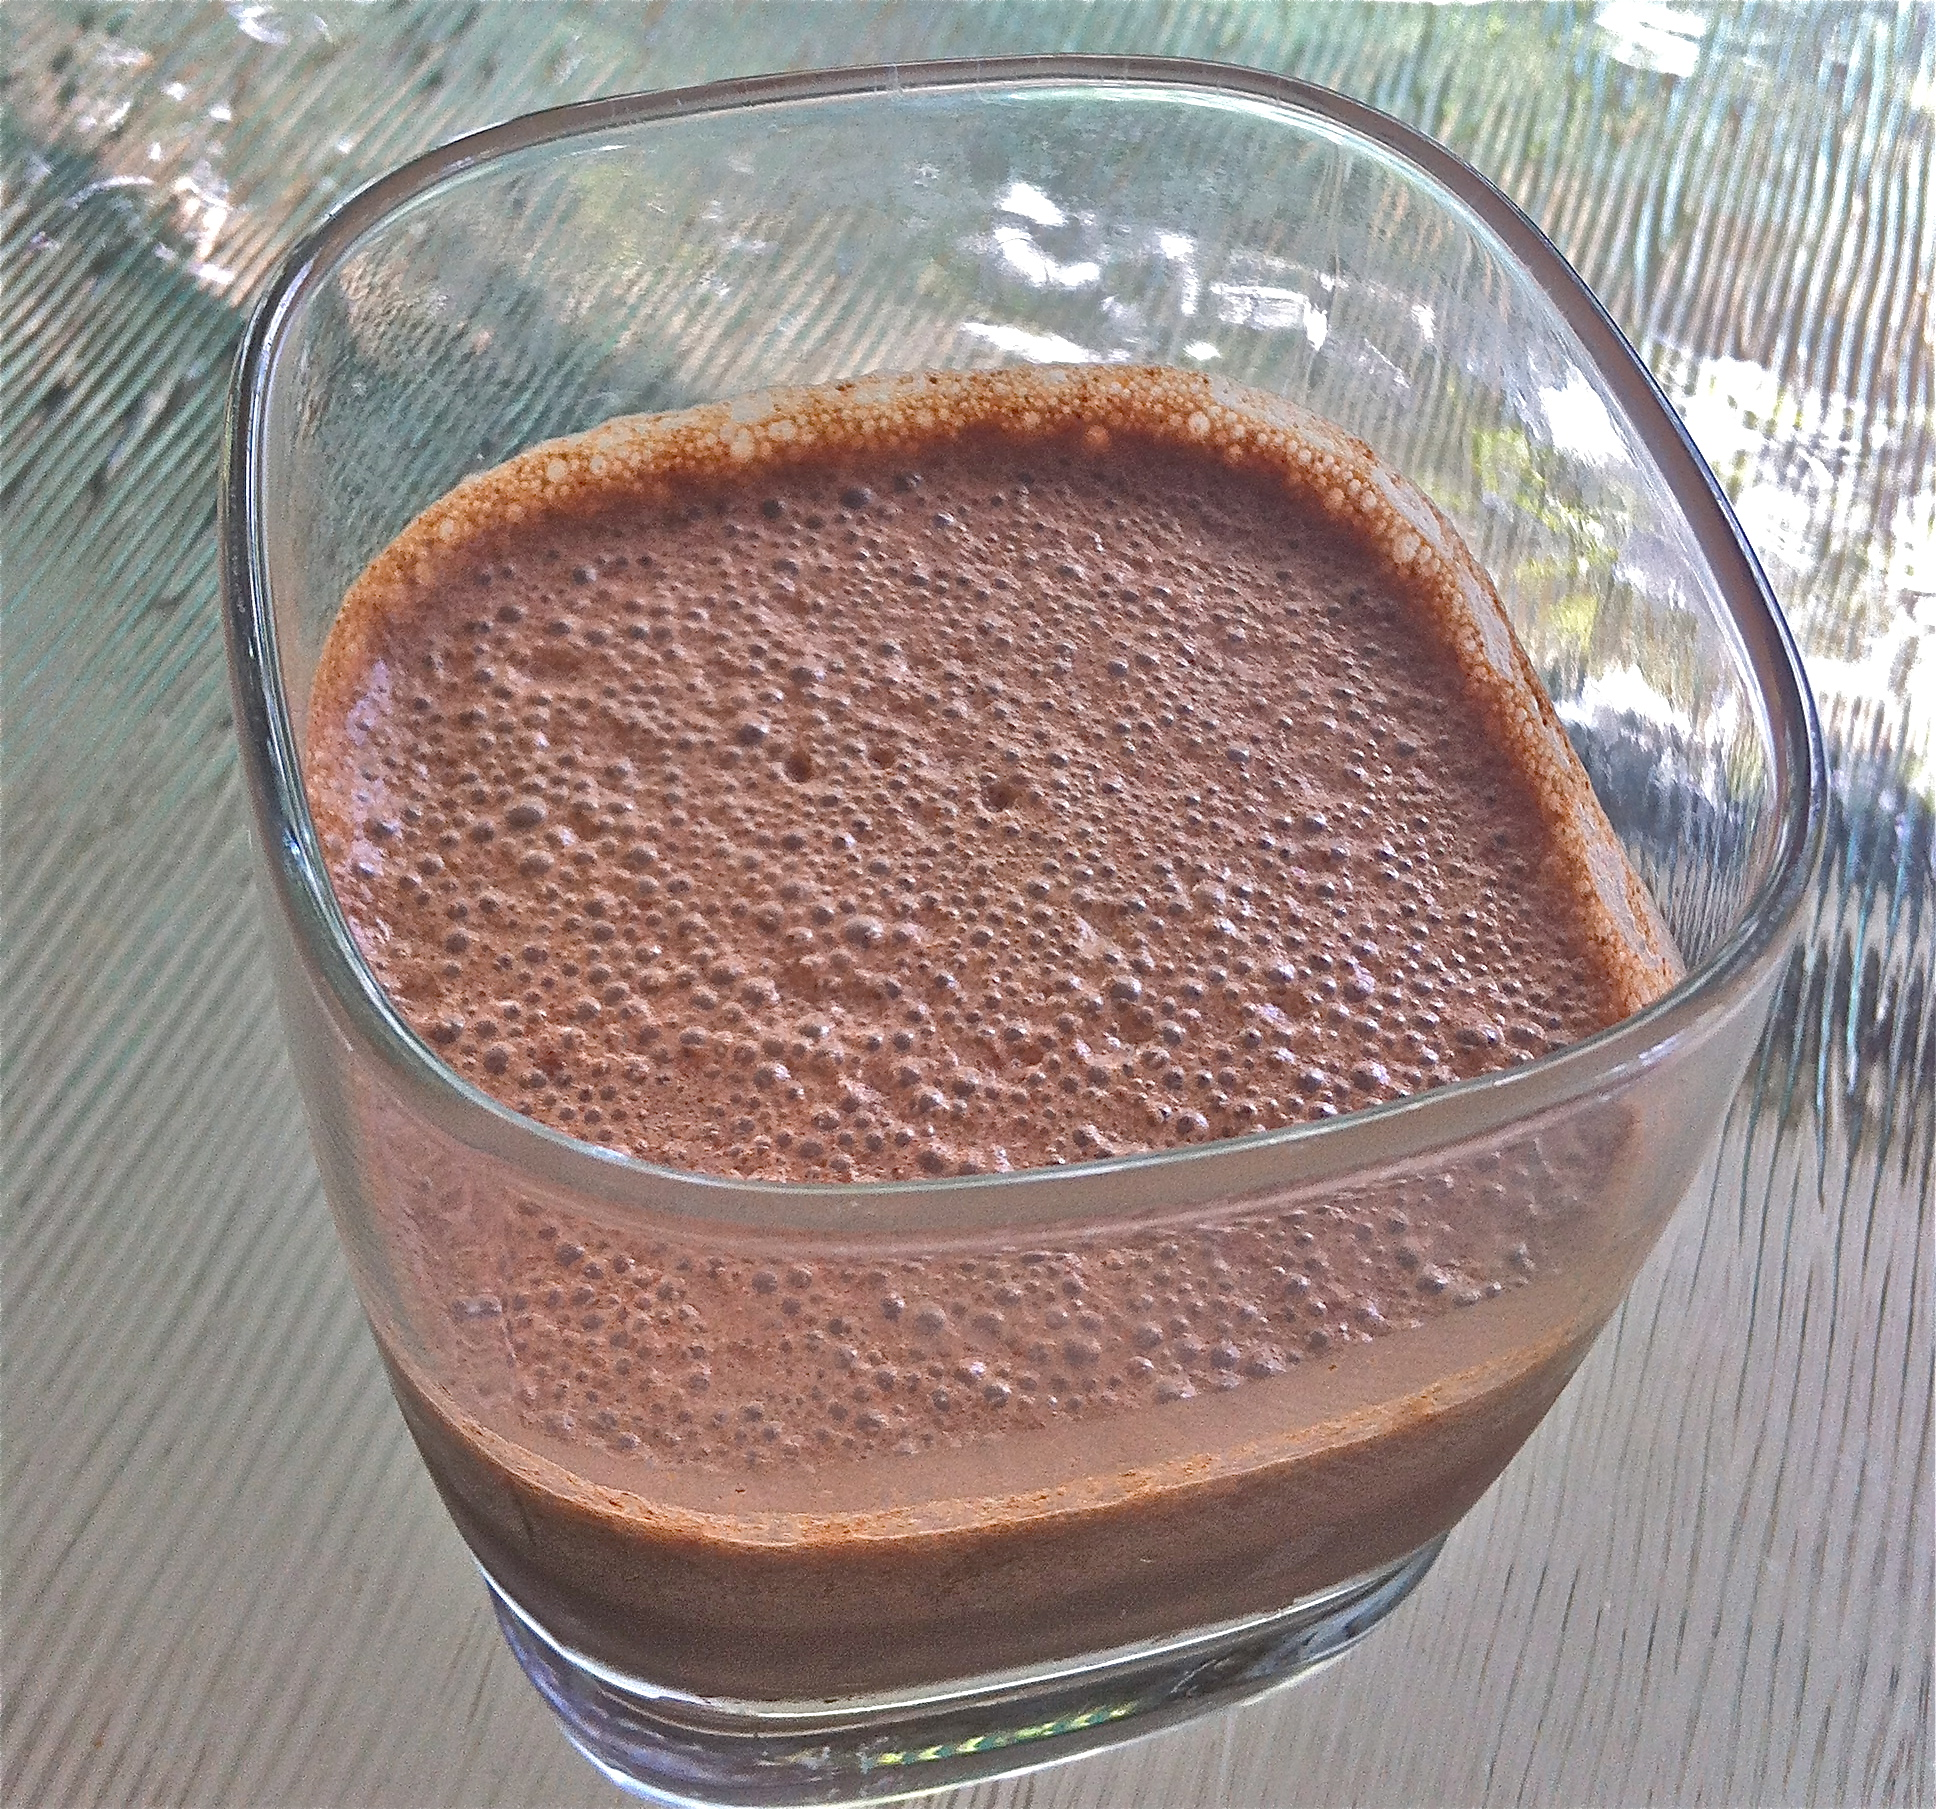 Chocolate Eggnog – delicious and nutrient dense